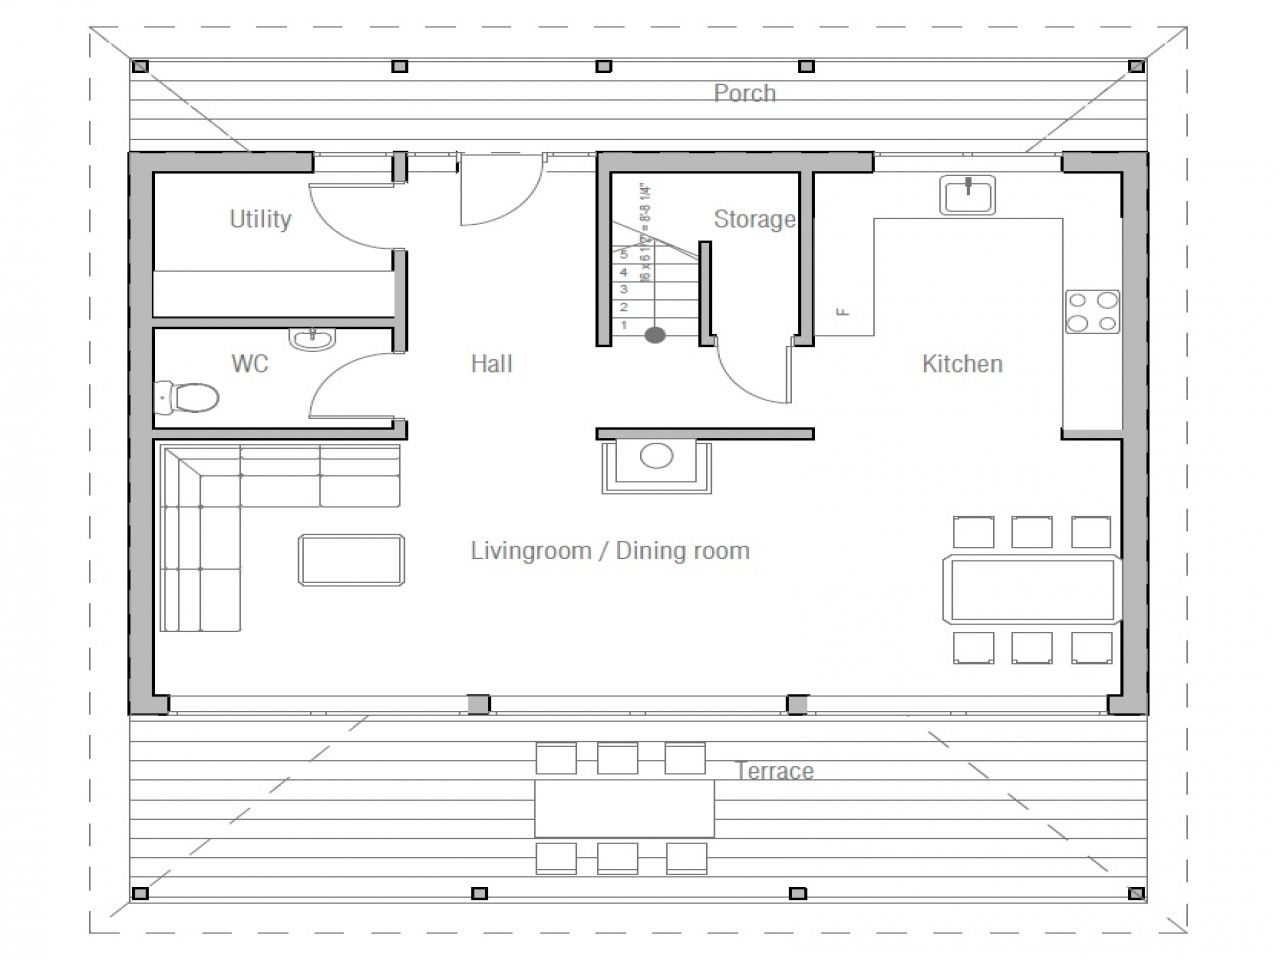 2 Bedroom Open Concept Floor Plans Small Open Concept House Plans Simple Floor Lrg About